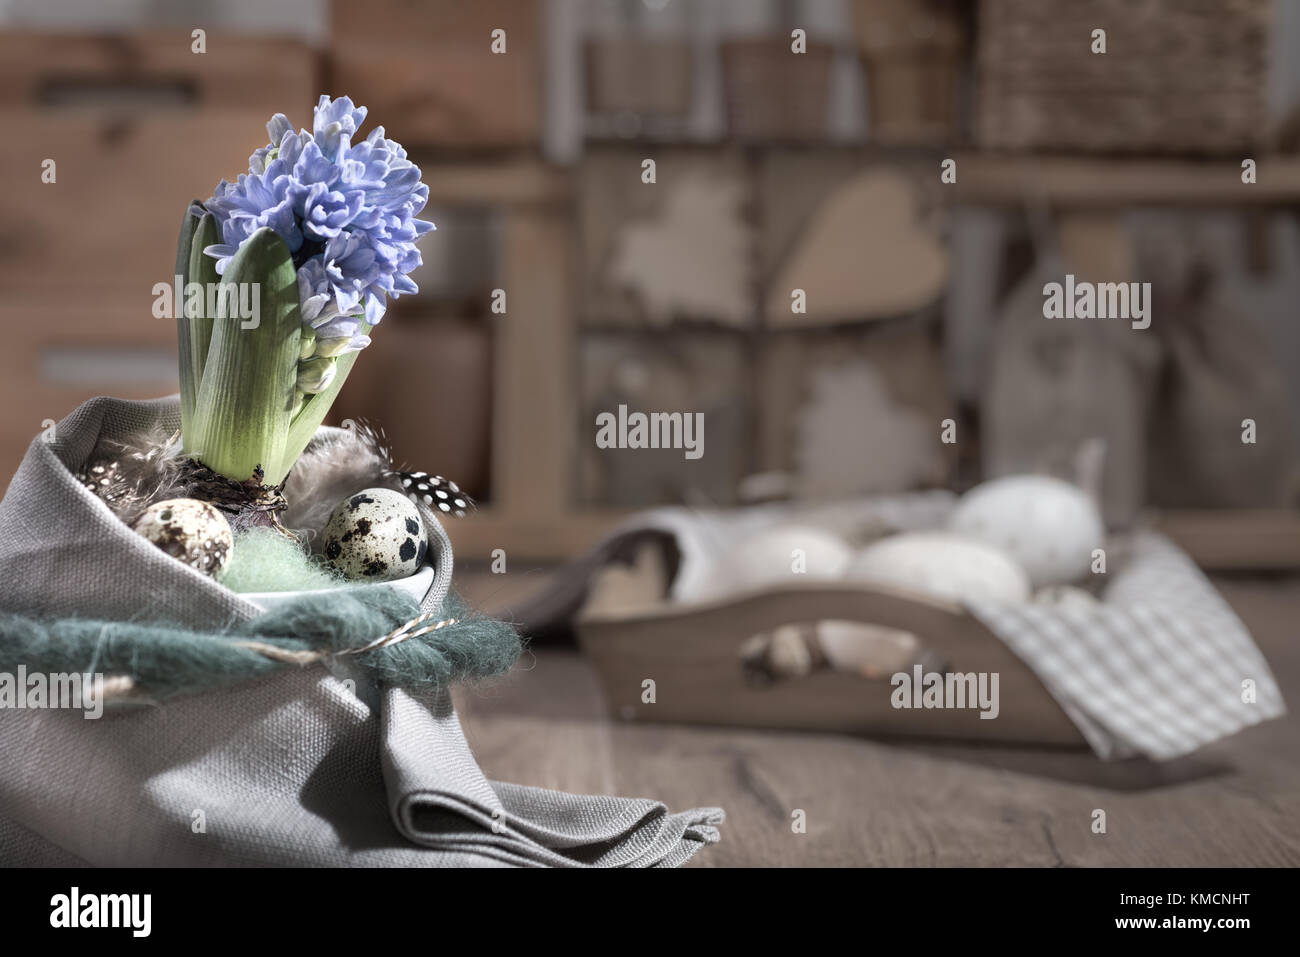 Delicate blue hyacinth on vintage kitchen. Happy Easter! Stock Photo